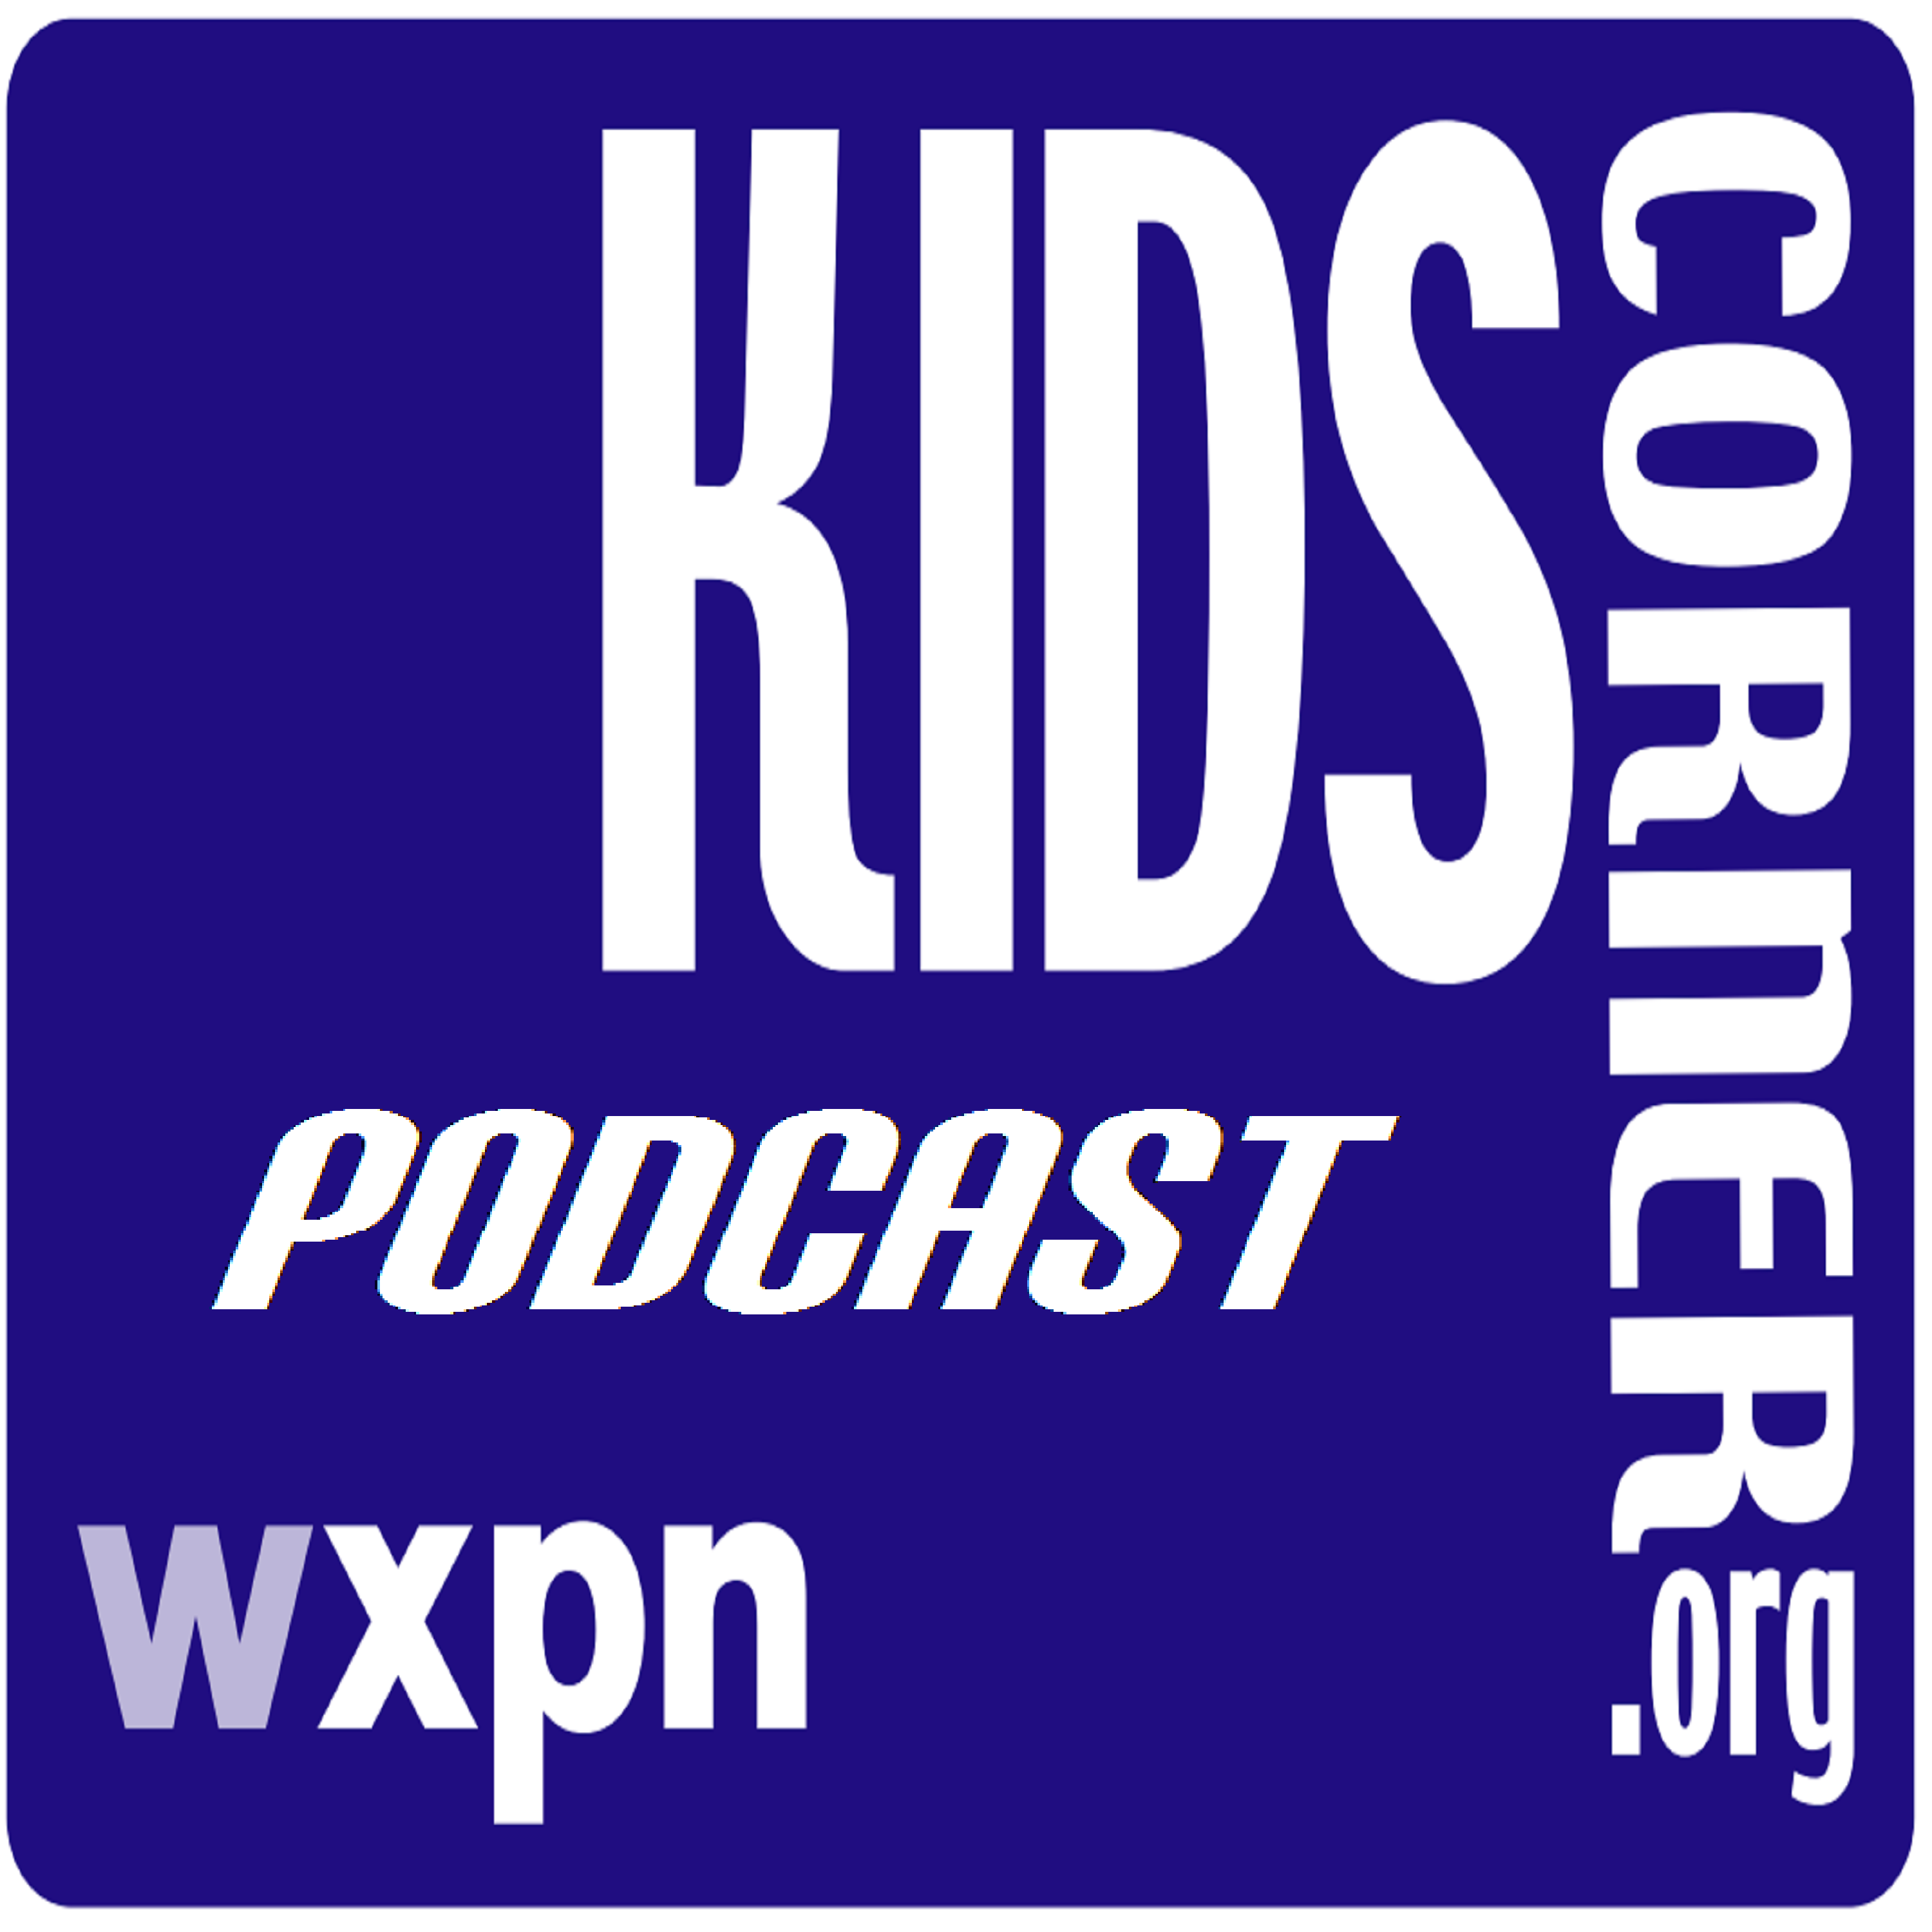 Kids Corner Podcast on XPN